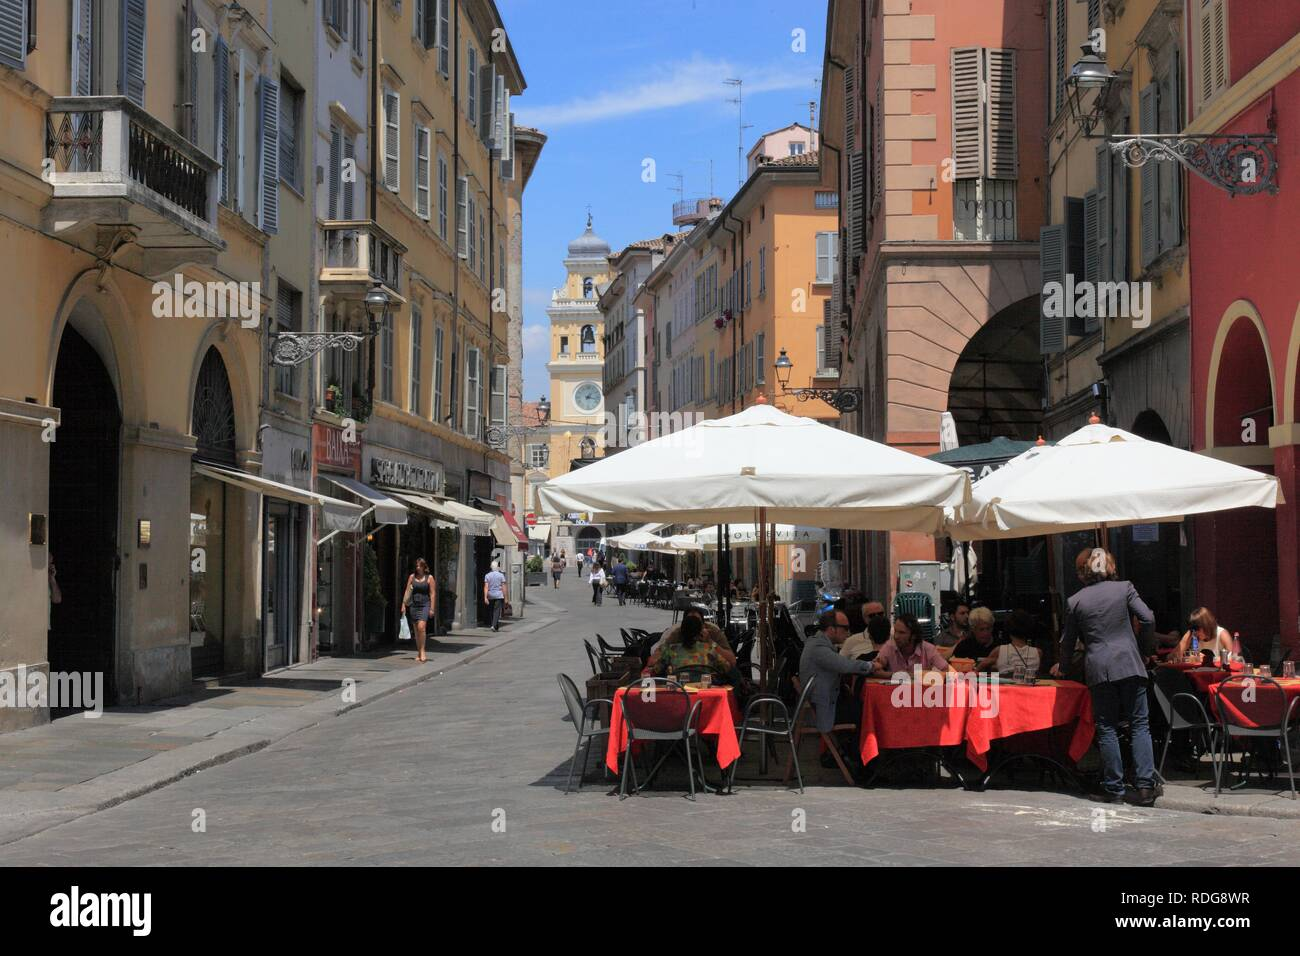 Sidewalk cafe in the historic town centre of Parma, Emilia Romagna, Italy, Europe - Stock Image